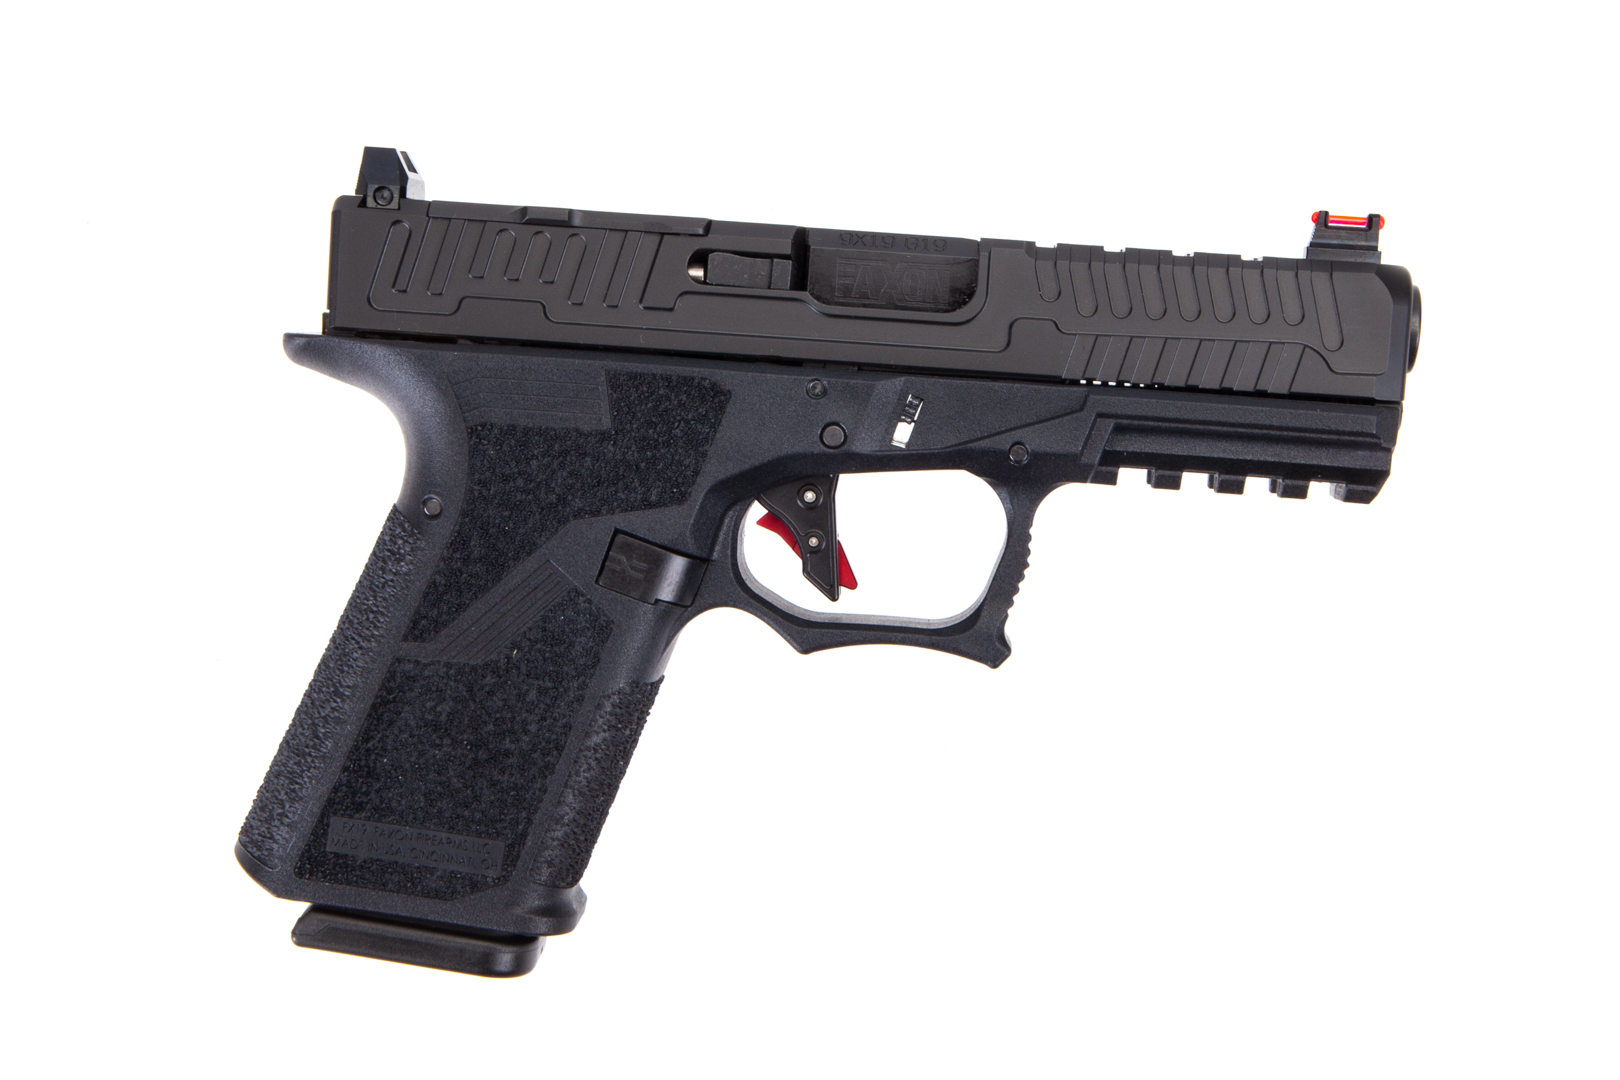 Faxon Firearms FX-19 Patriot Compact Pistol - 9MM